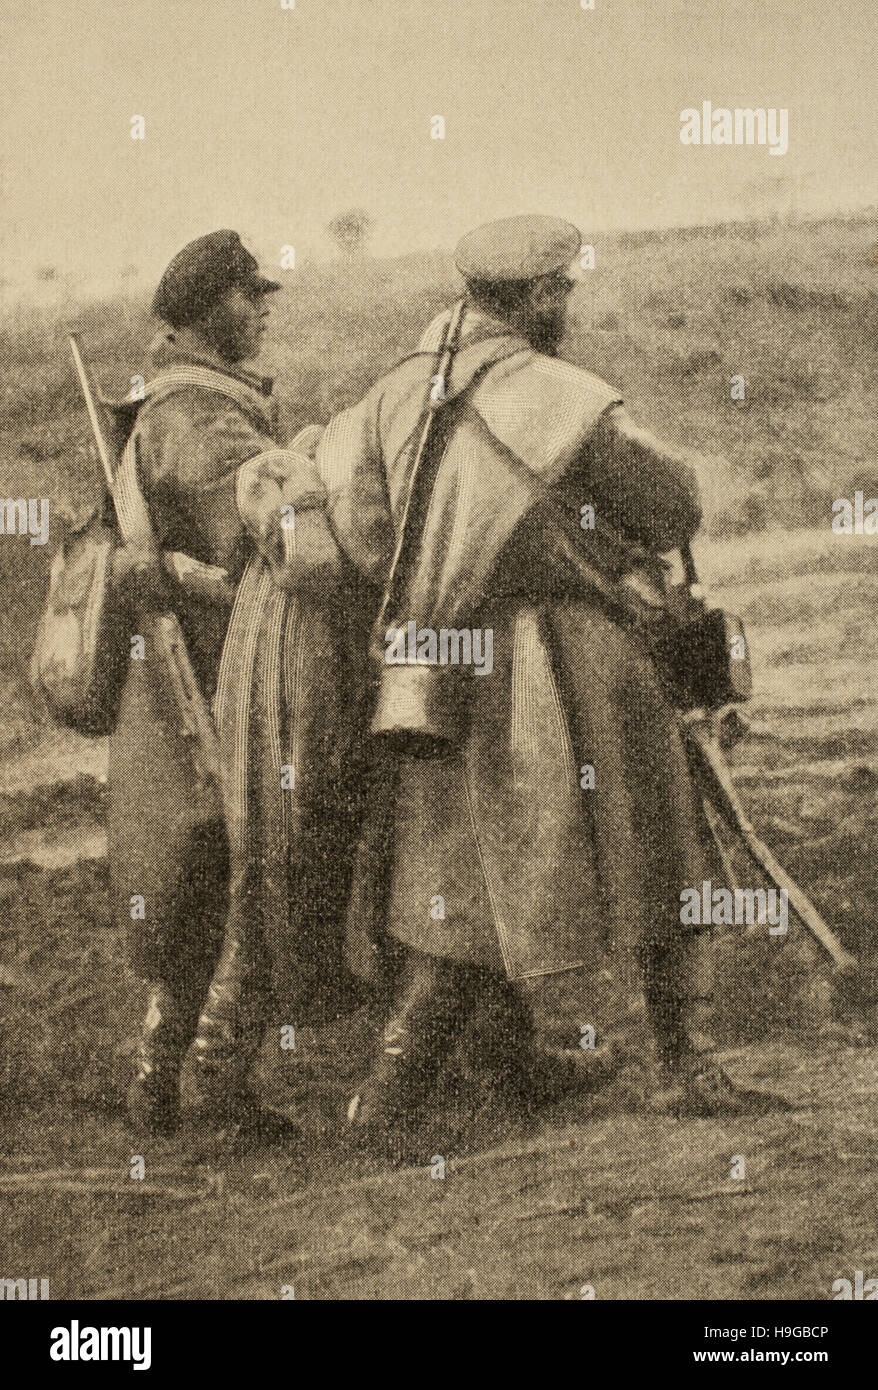 Russo-Japanese War (1904-1905). Skirmish at Shaho on December 10, 1904. Russian soldiers carrying a wounded comrade. - Stock Image